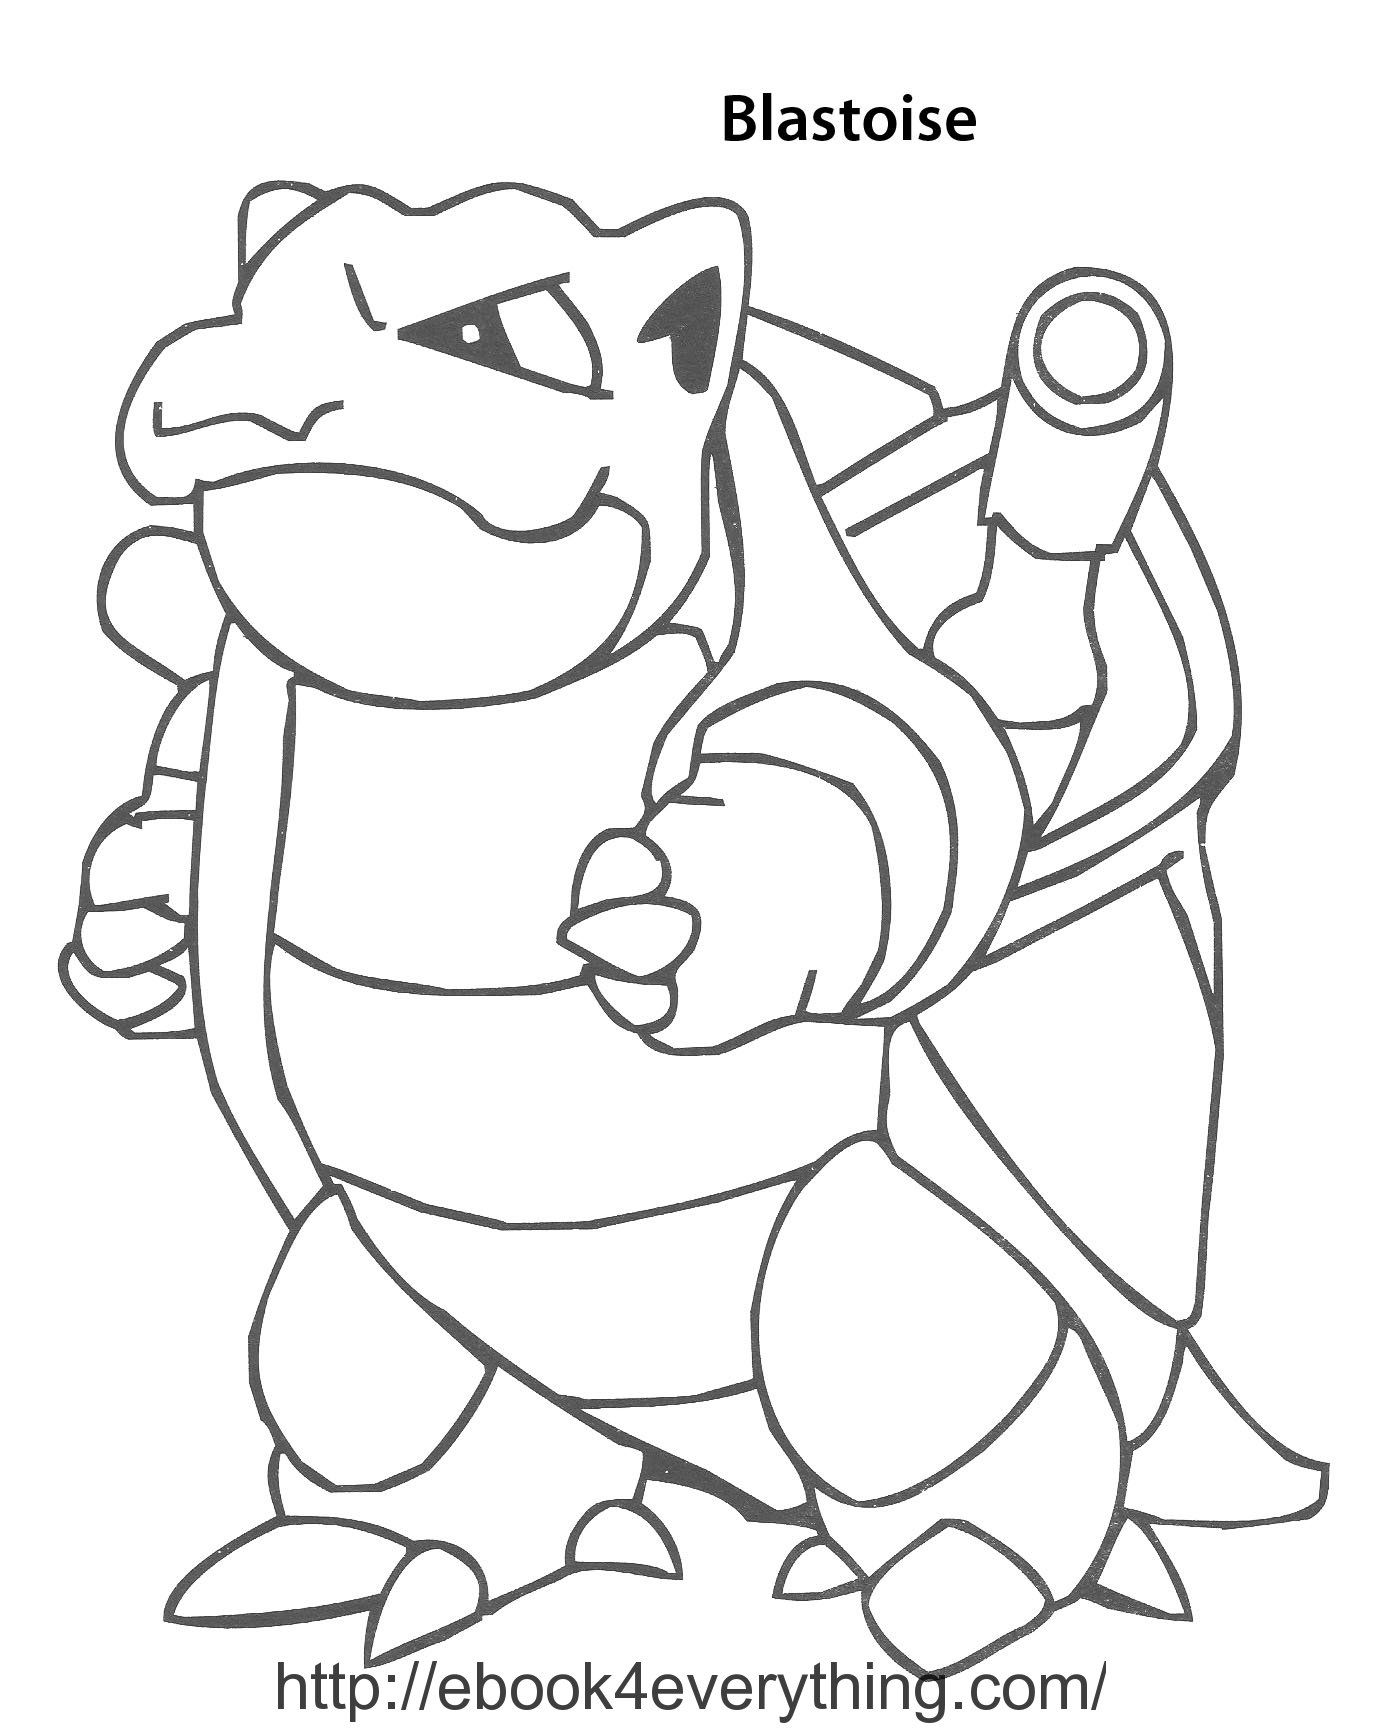 blastoise coloring pages pokemon blastoise coloring pages sketch coloring page blastoise coloring pages